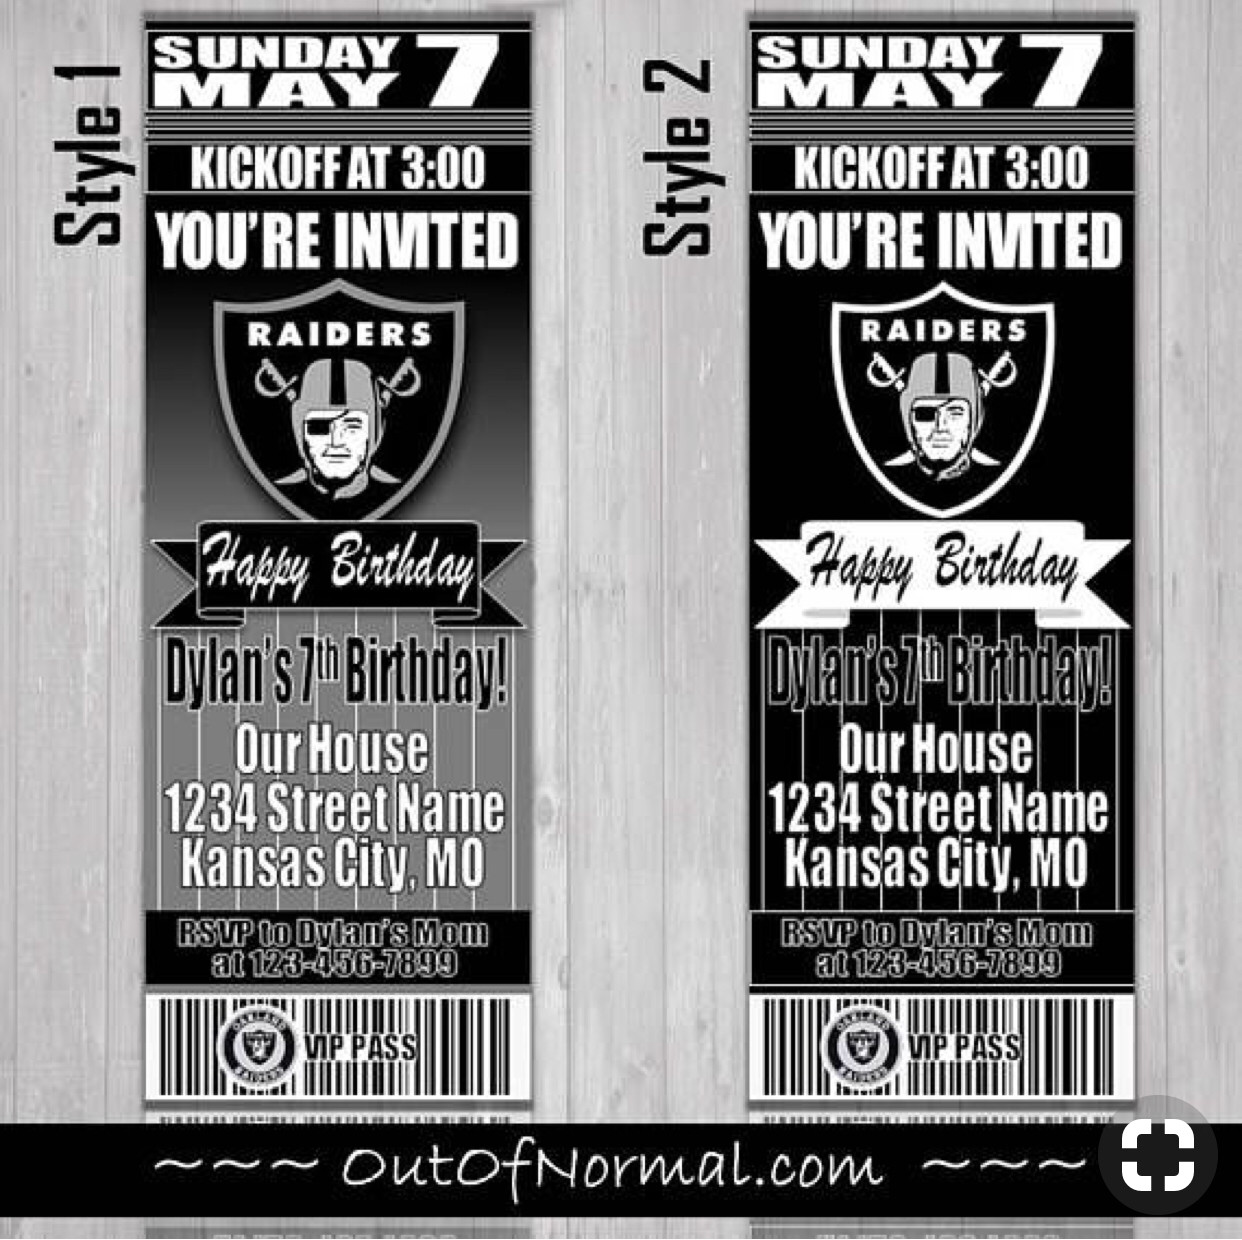 Oakland Raiders Bedroom Set New Greeting Cards & Party Supply Oakland Raiders Ticket Style